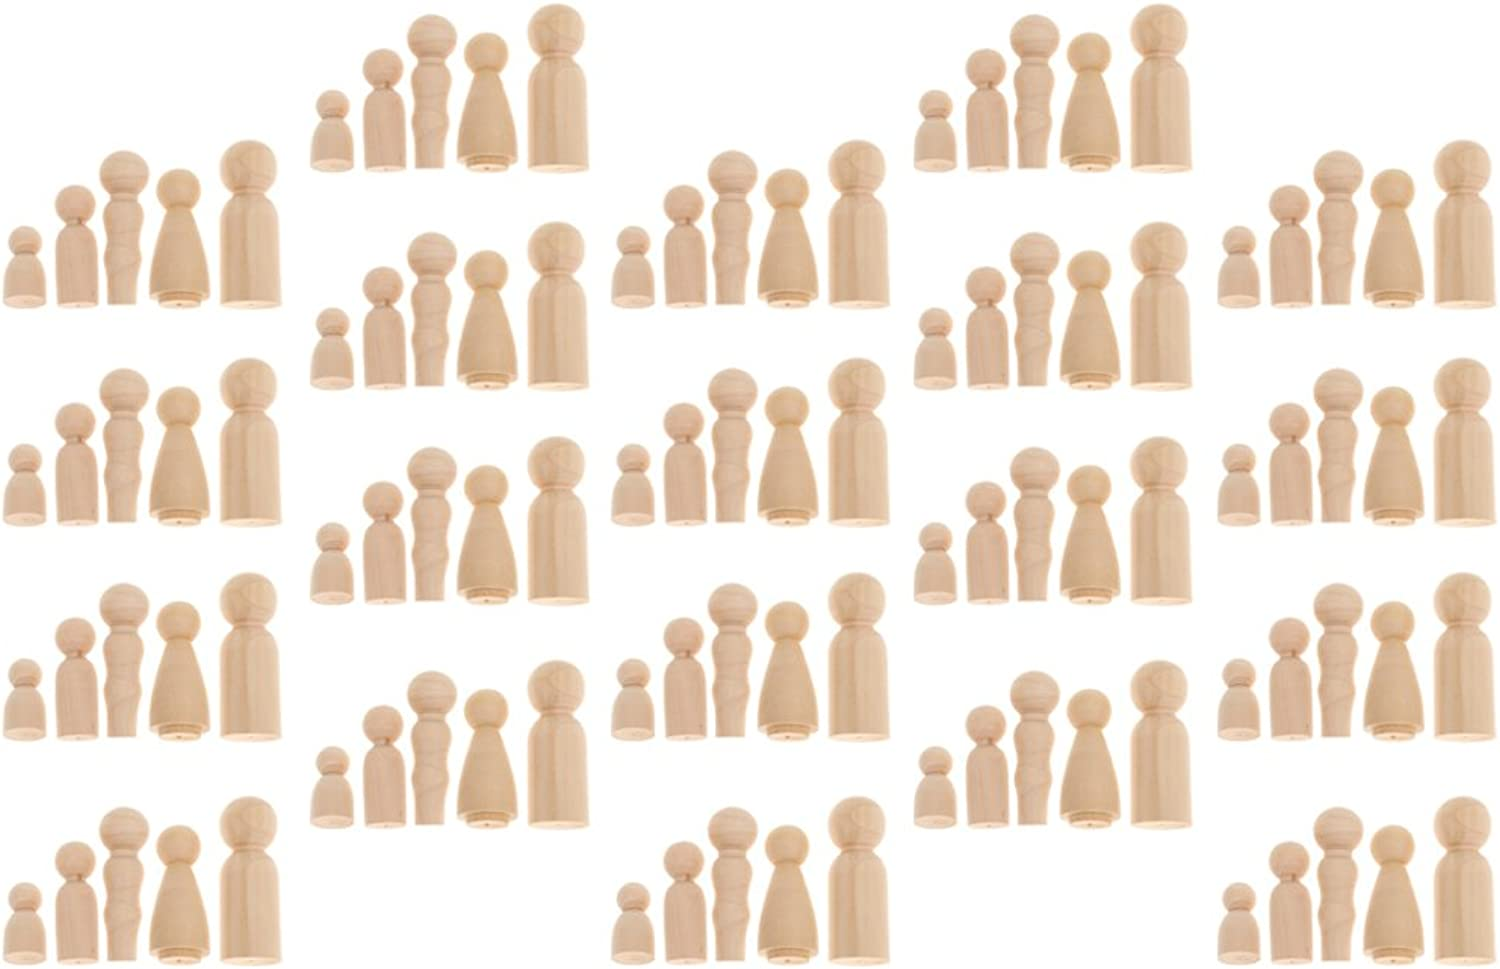 CUTICATE 100PCS Wooden Dolls to Paint Blank Peg Doll Bodies - Family People Shapes Craft, Wedding   Birthday Cake Toppers